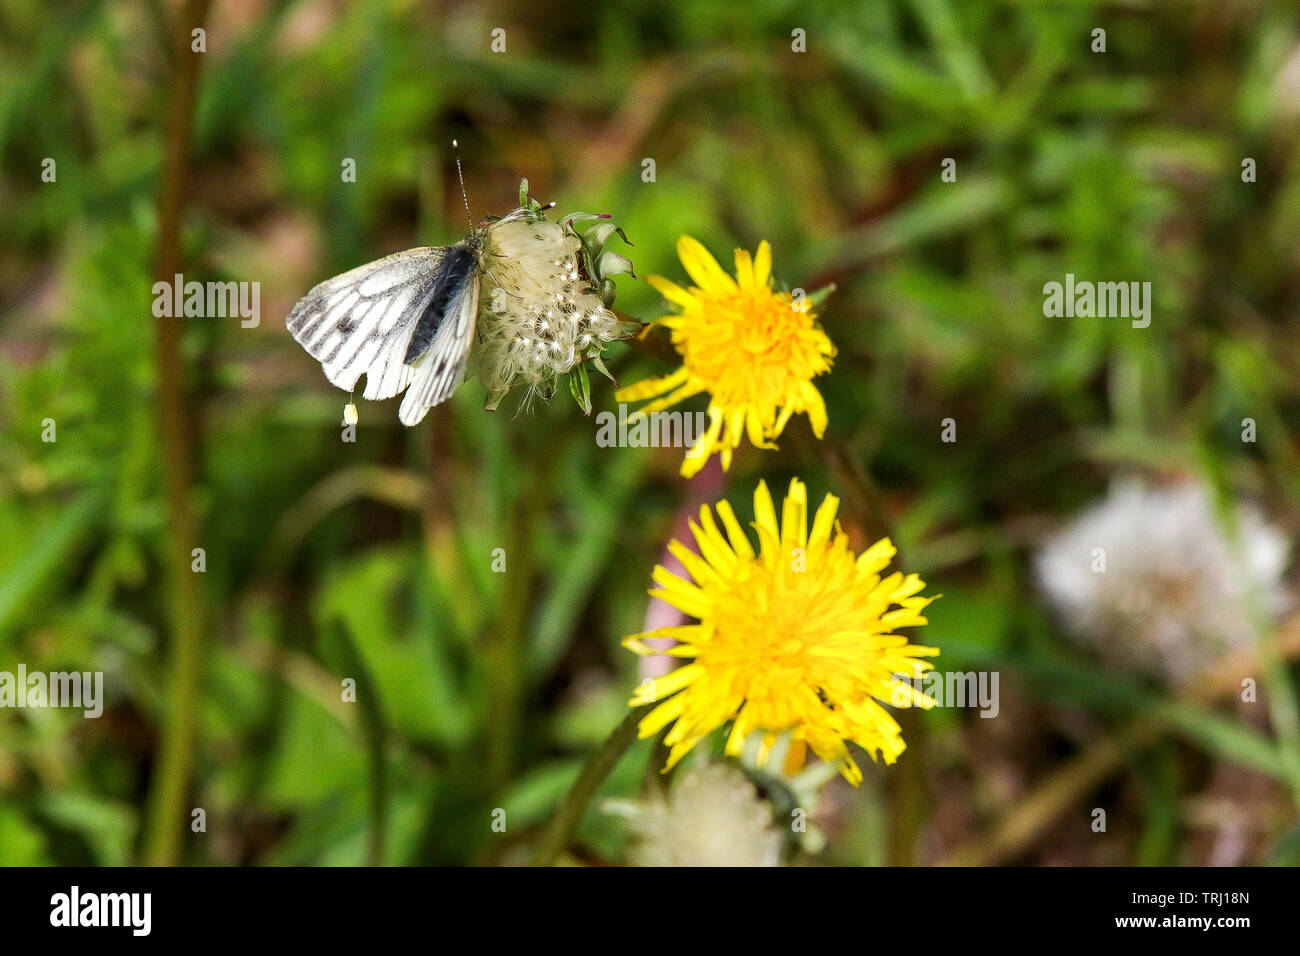 Pollination on woodland dandelions with a white butterfly on a dandelion seed head. Stock Photo